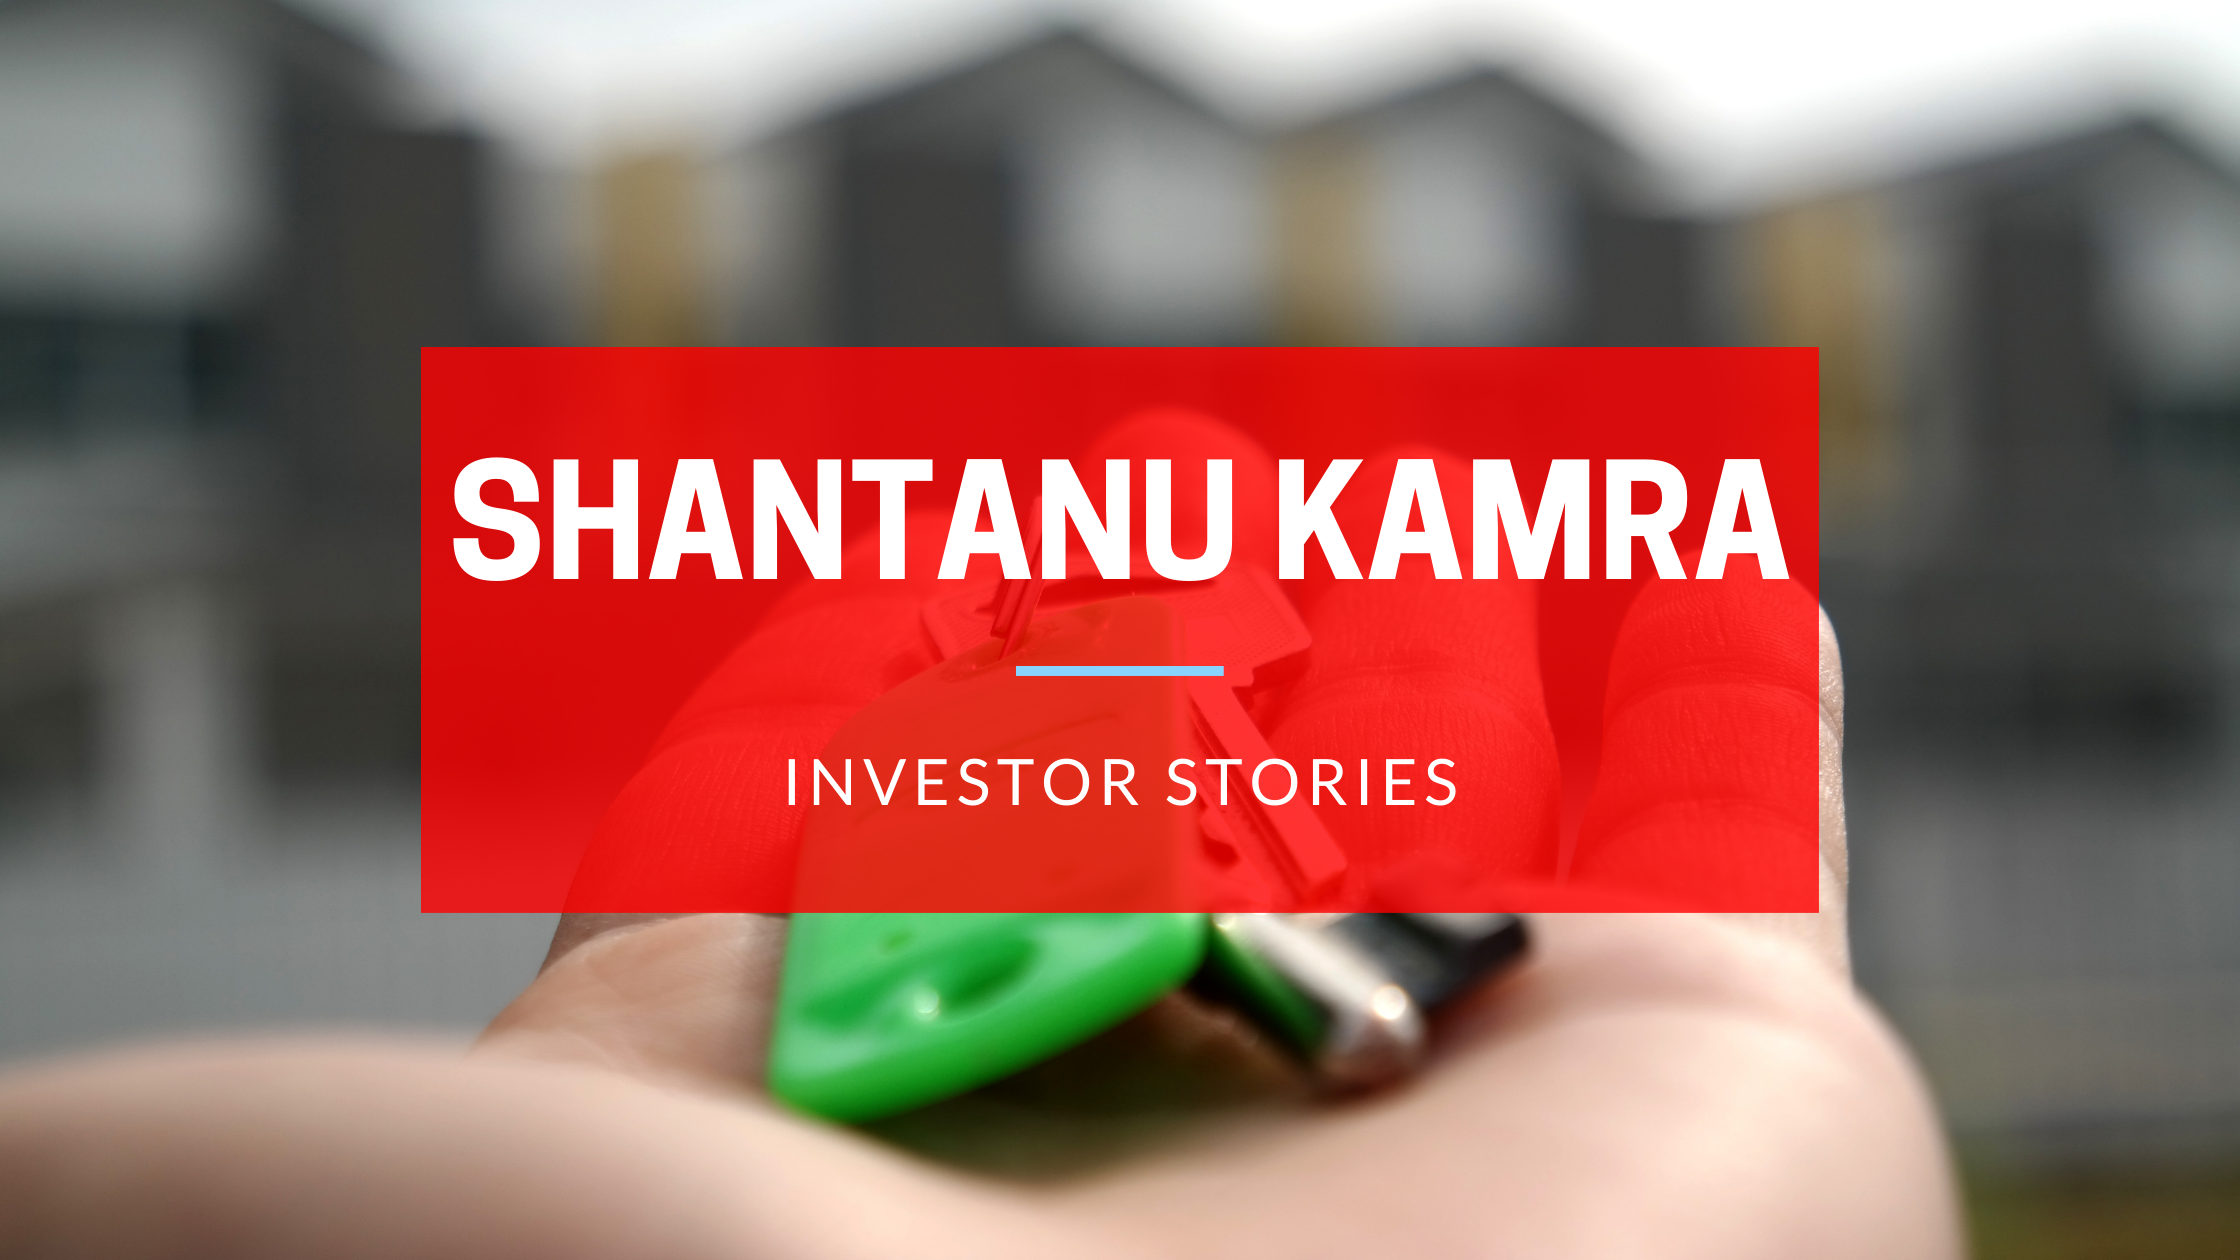 Investor Stories Featuring Shantanu Kamra